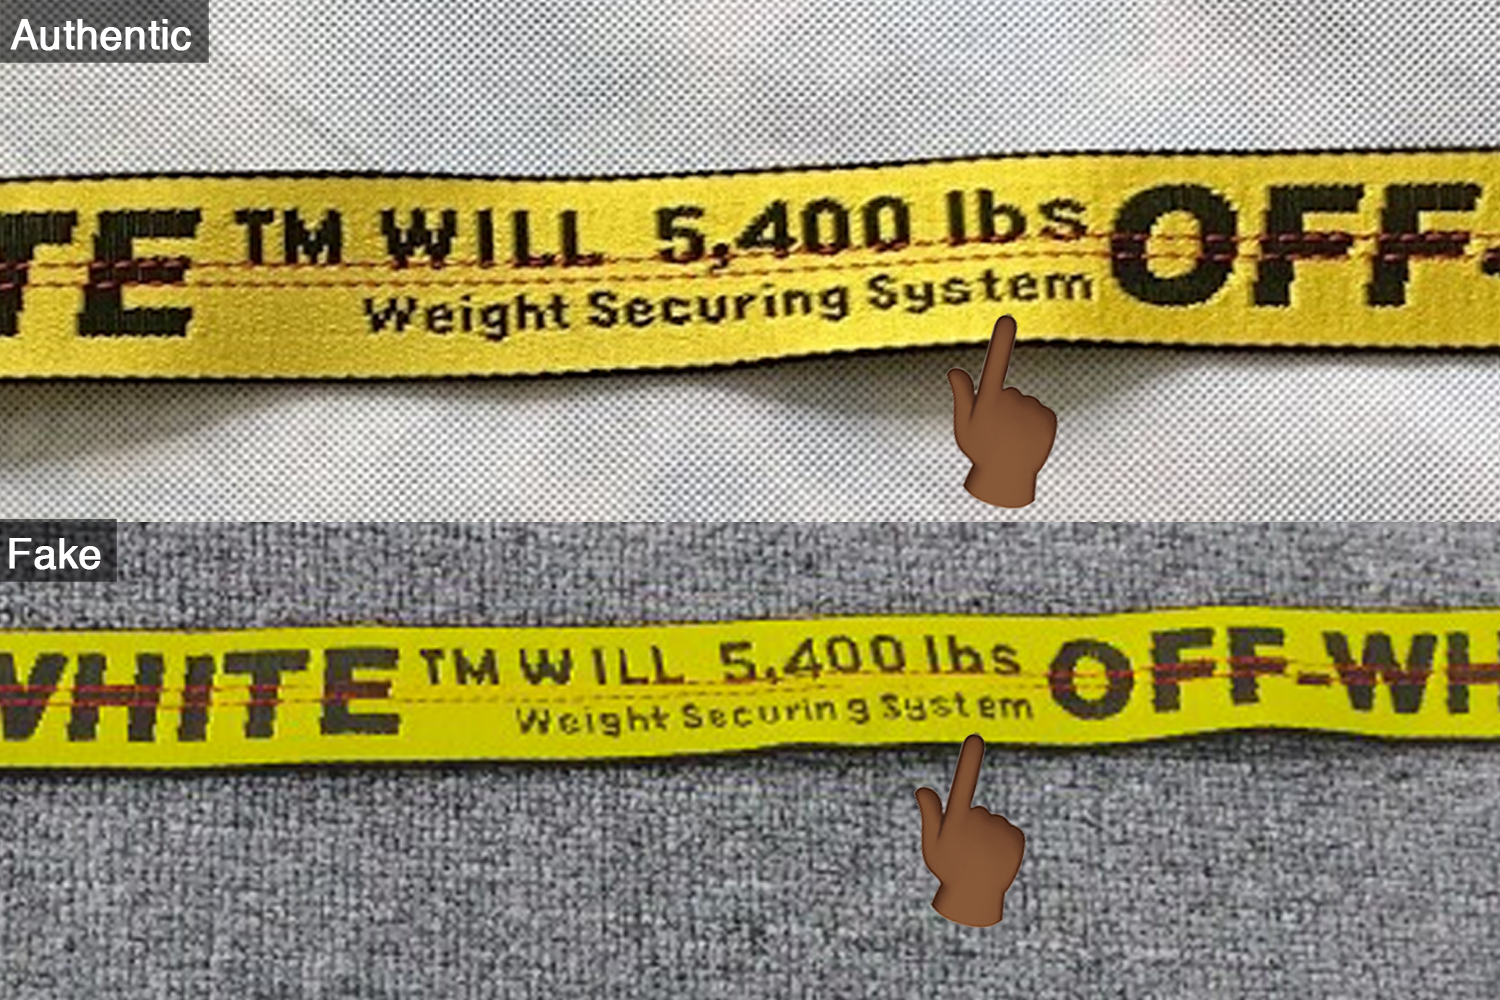 Extra Ing Between Syst And Em Please Also Look At The Overall Font On Weight Securing System Text Notice Difference